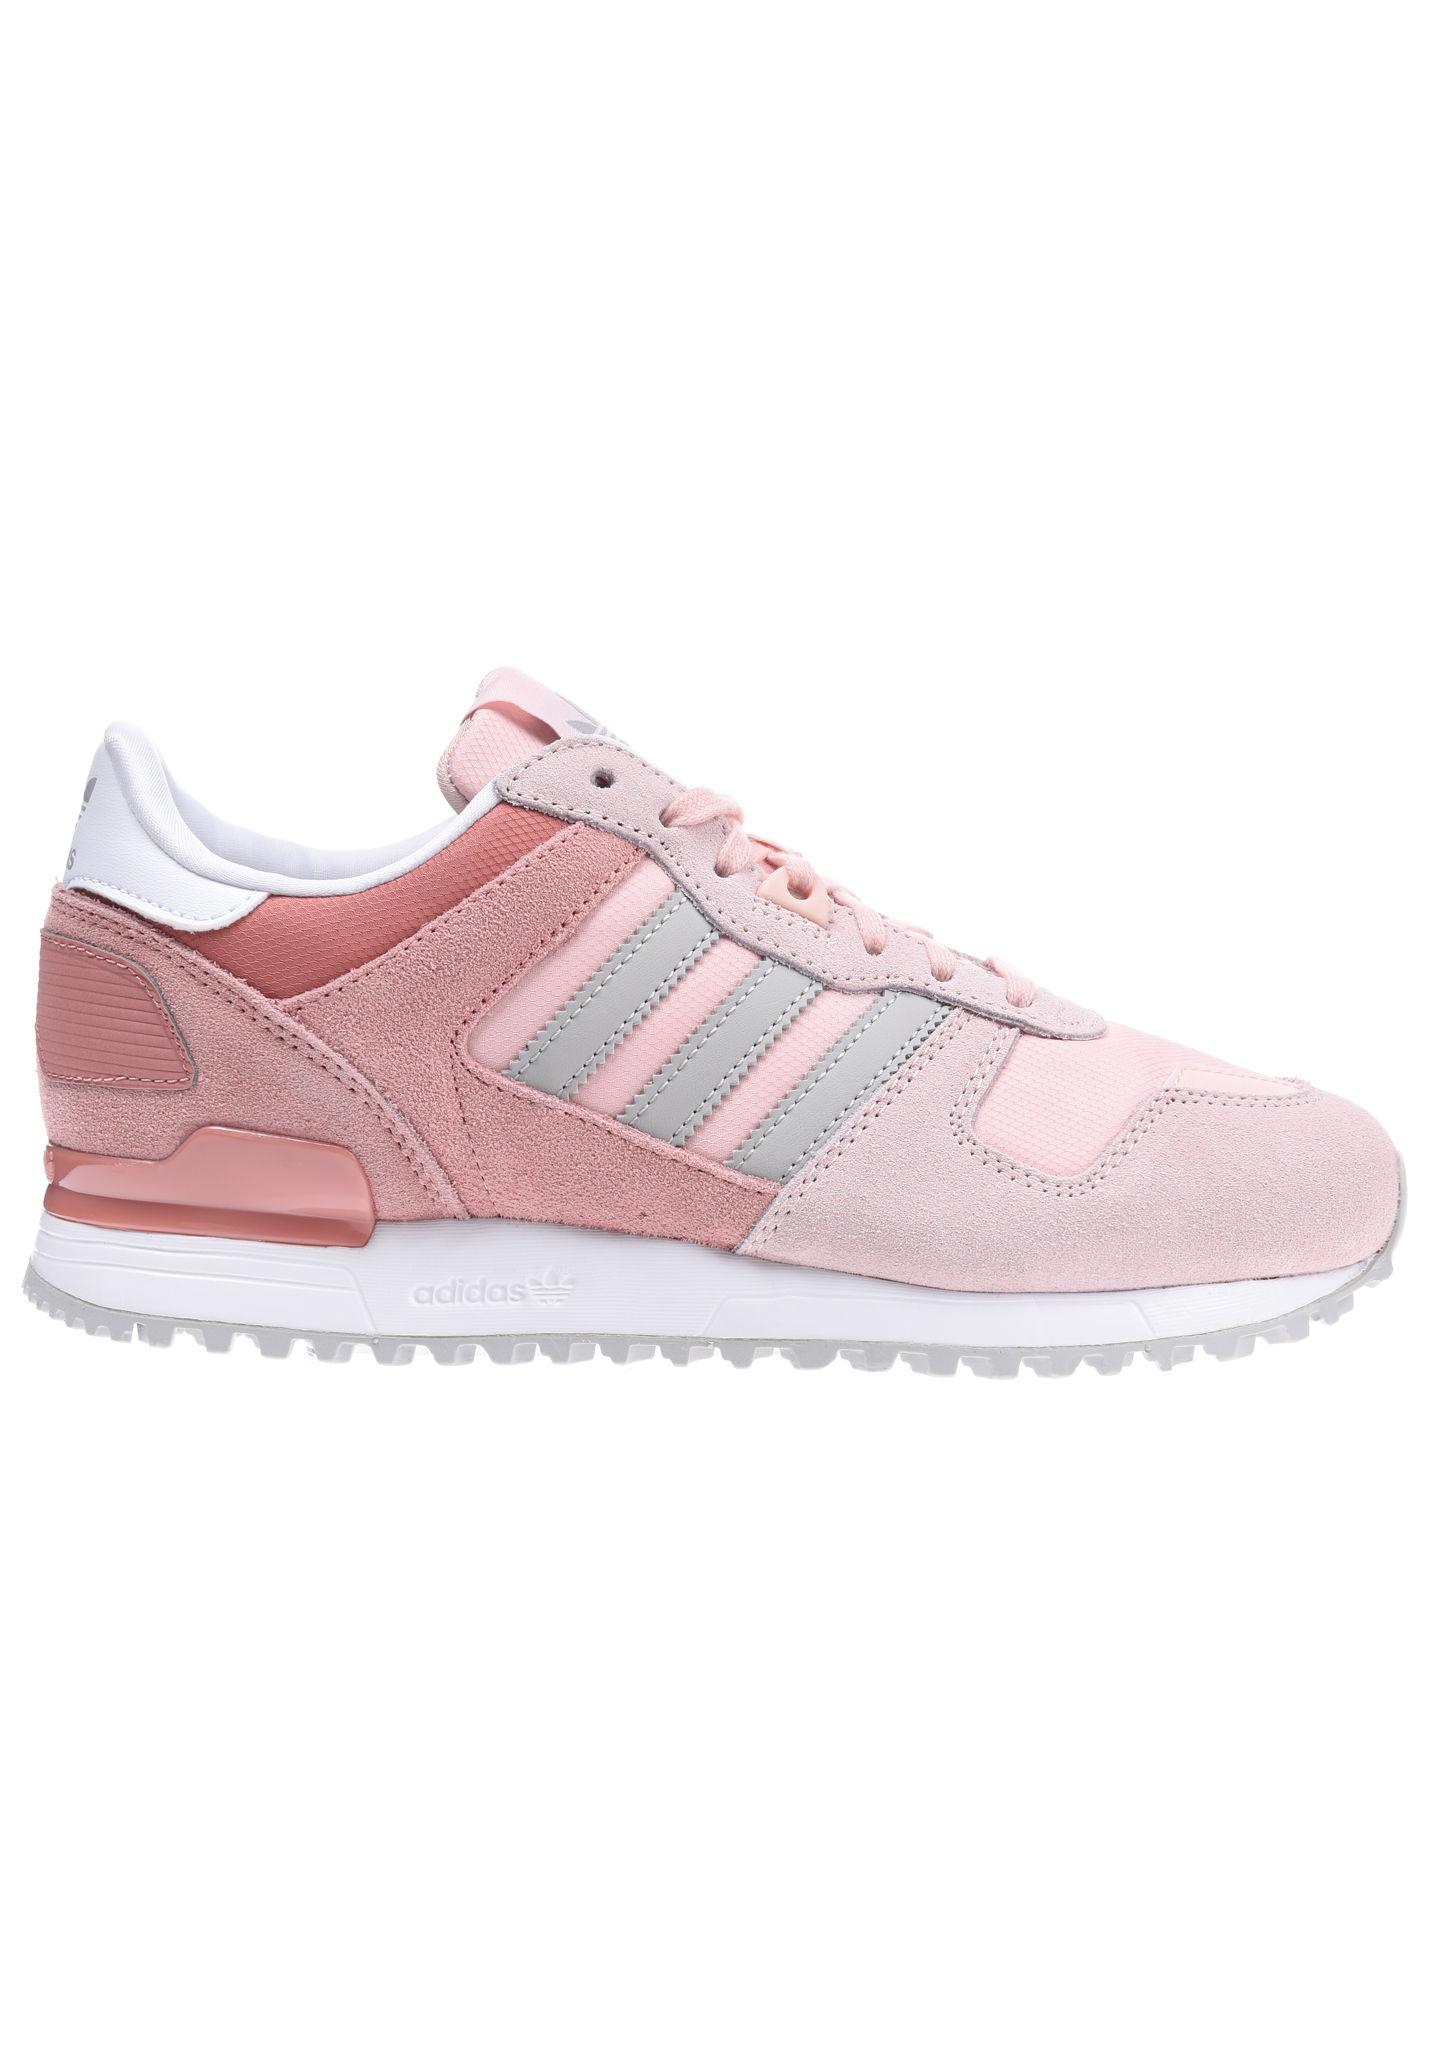 detailed look c7937 805f0 ADIDAS ORIGINALS ZX 700 - Sneakers for Women - Pink - Planet